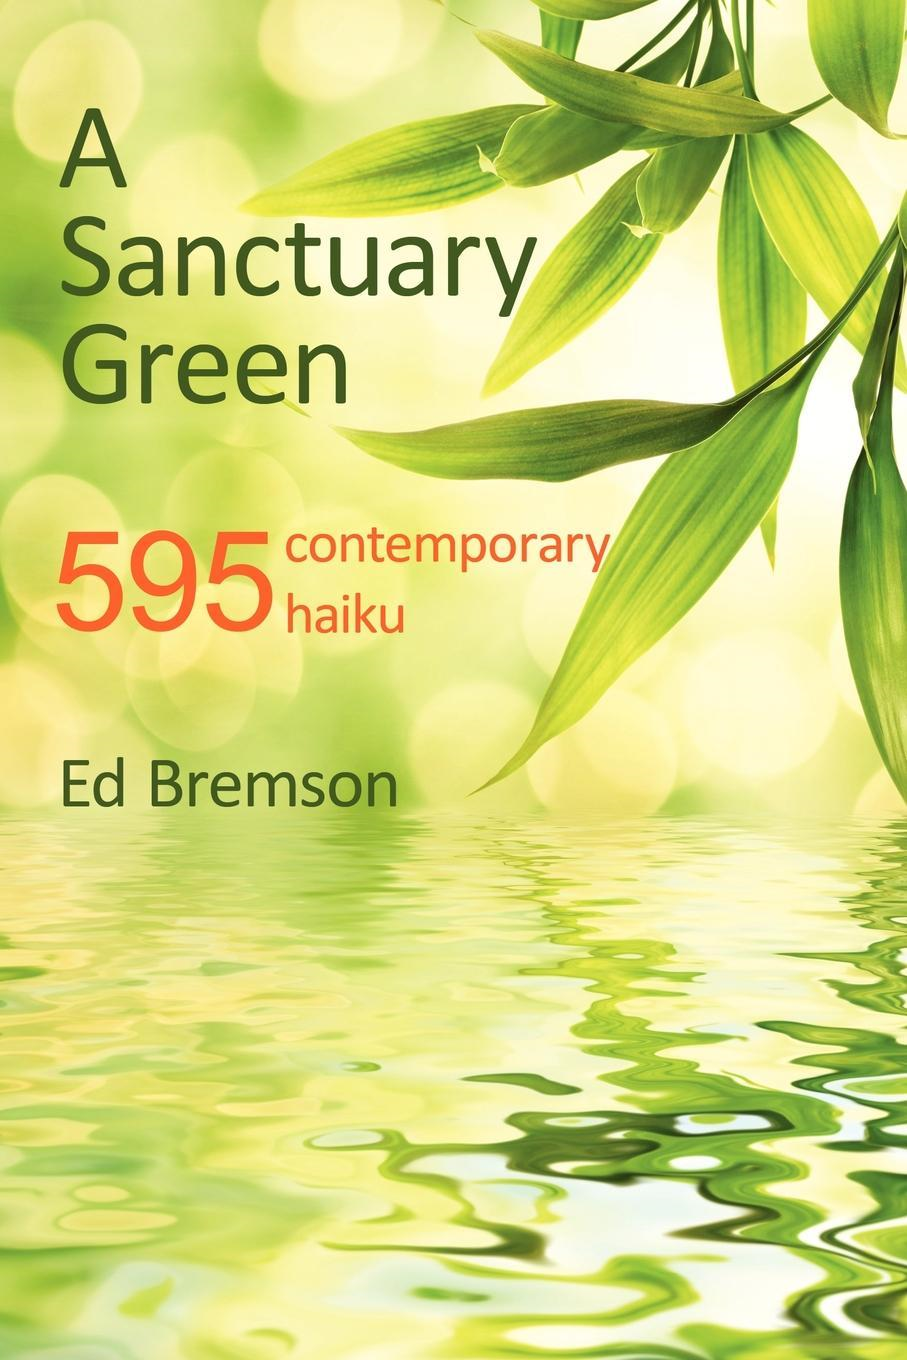 A Sanctuary Green: 595 contemporary haiku By: Ed Bremson